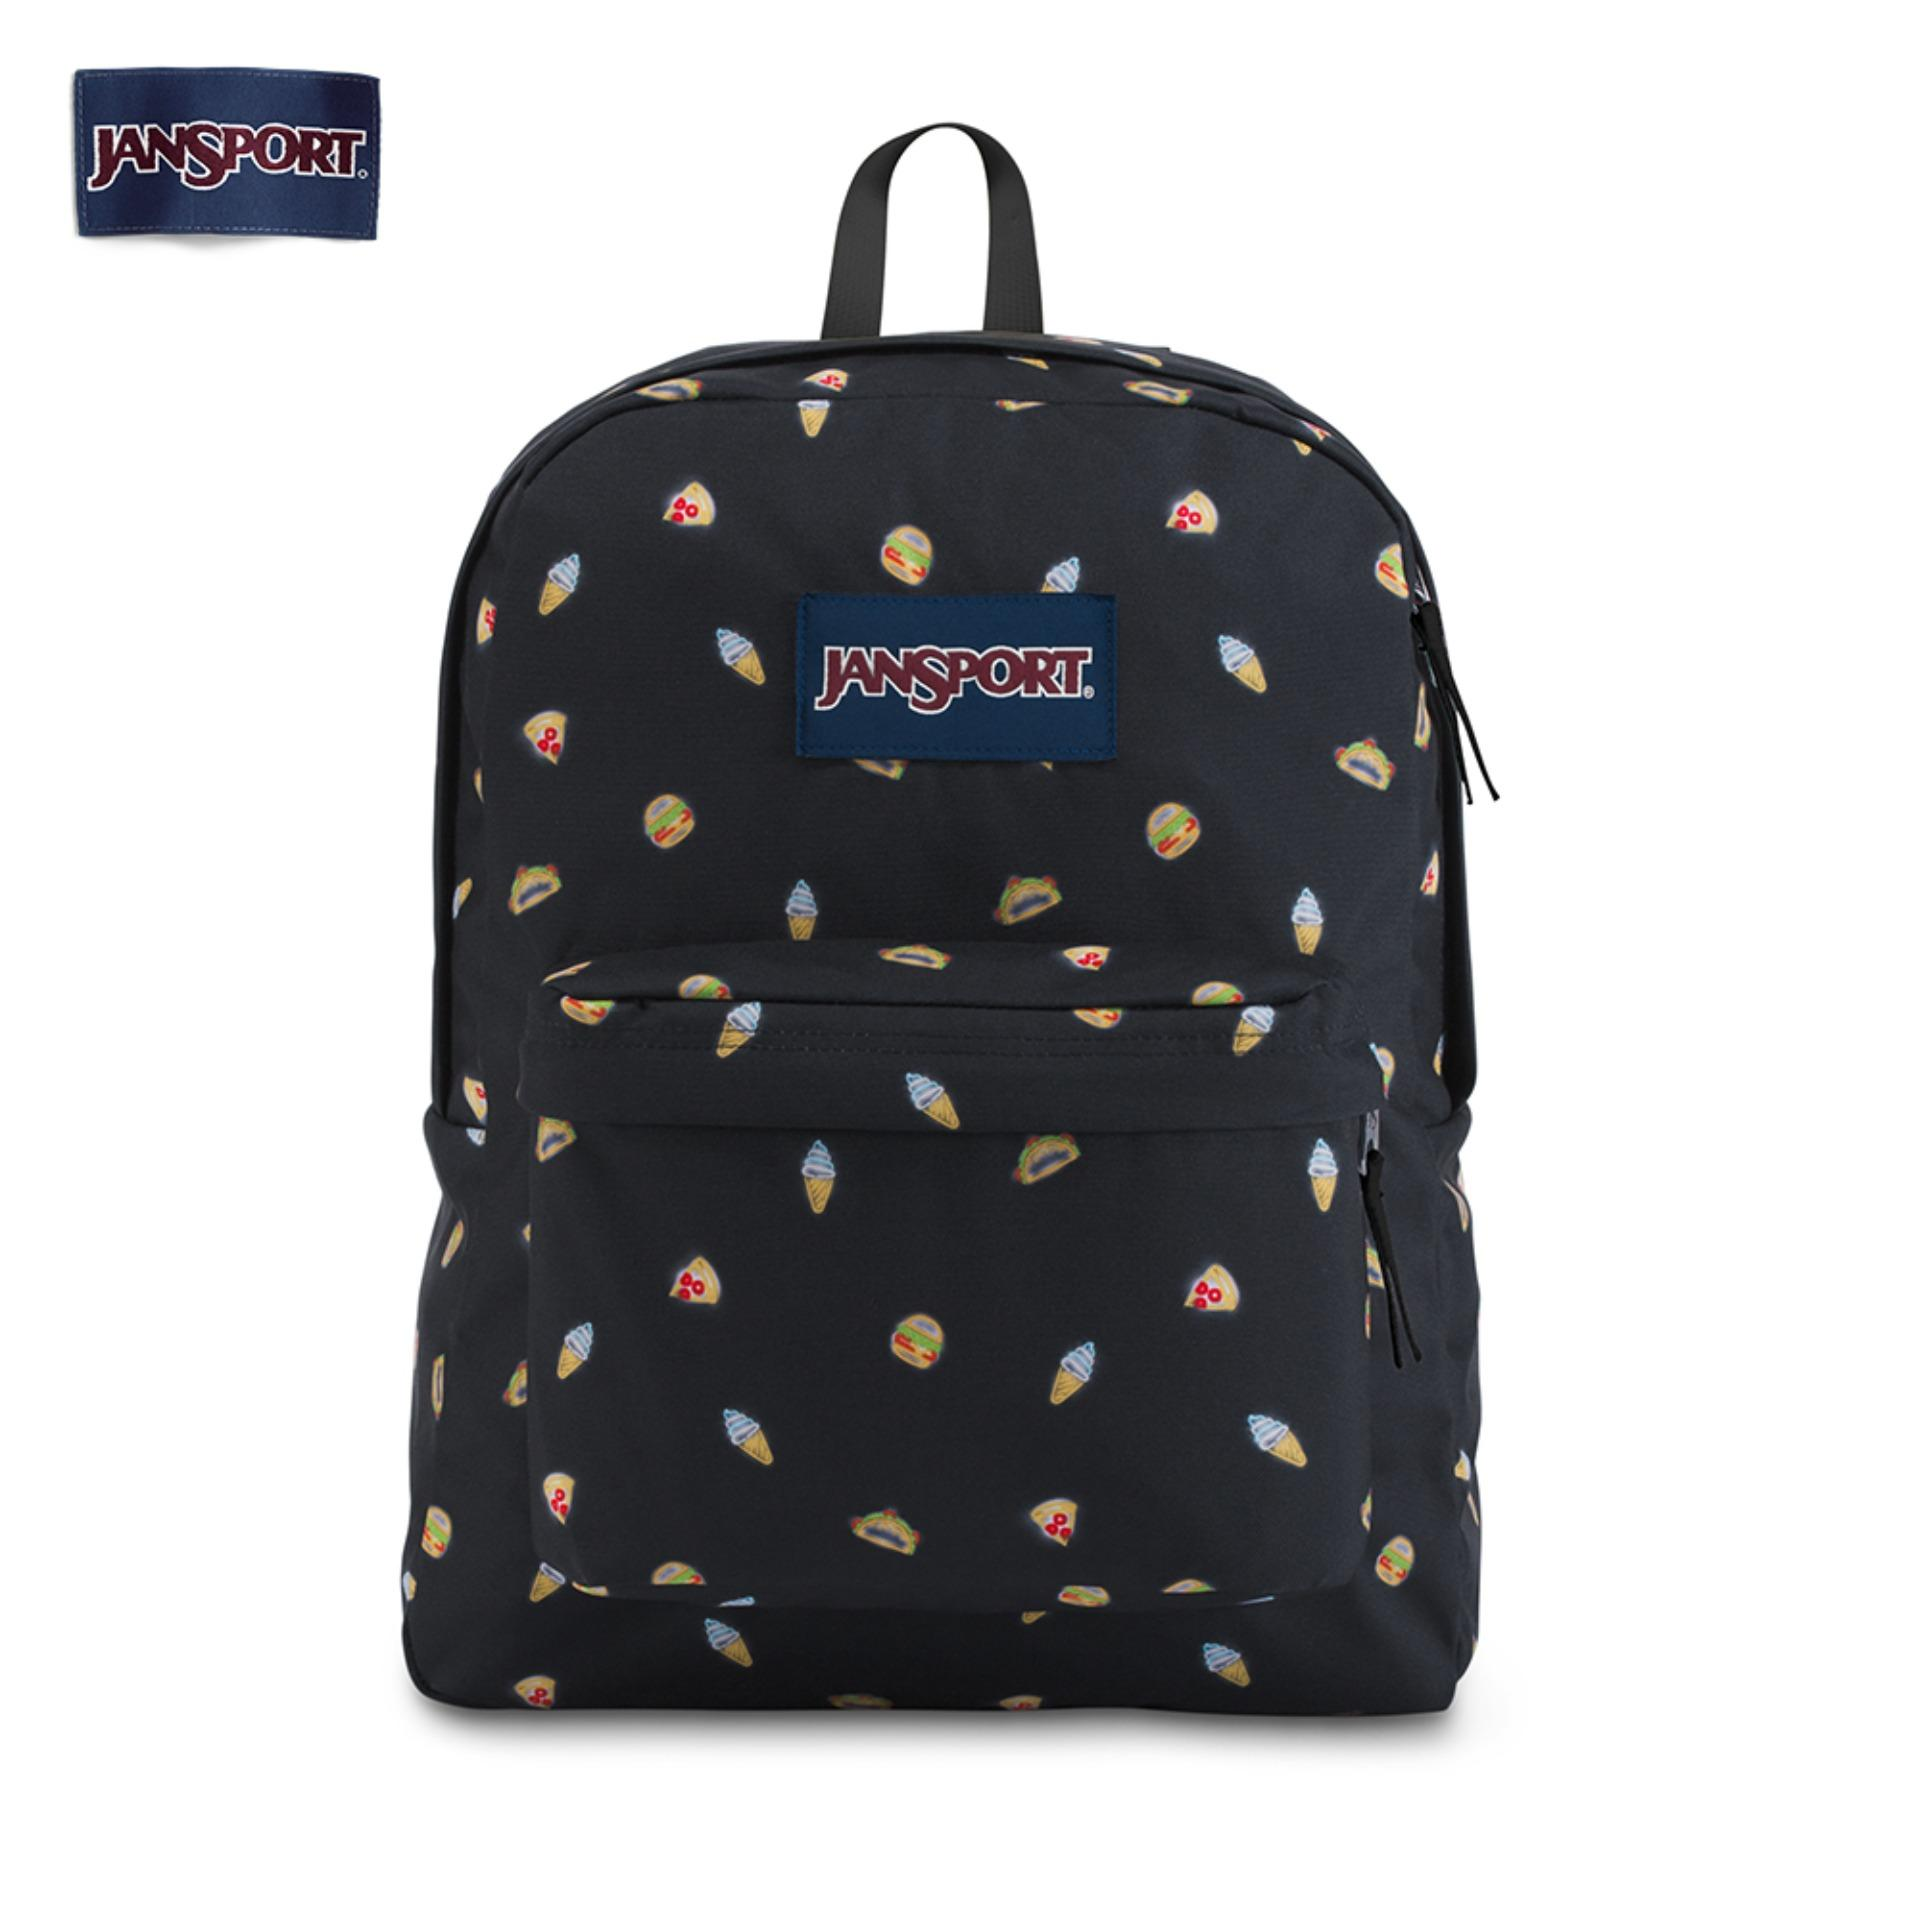 260cf3475d JanSport Philippines  JanSport price list - JanSport Bags ...